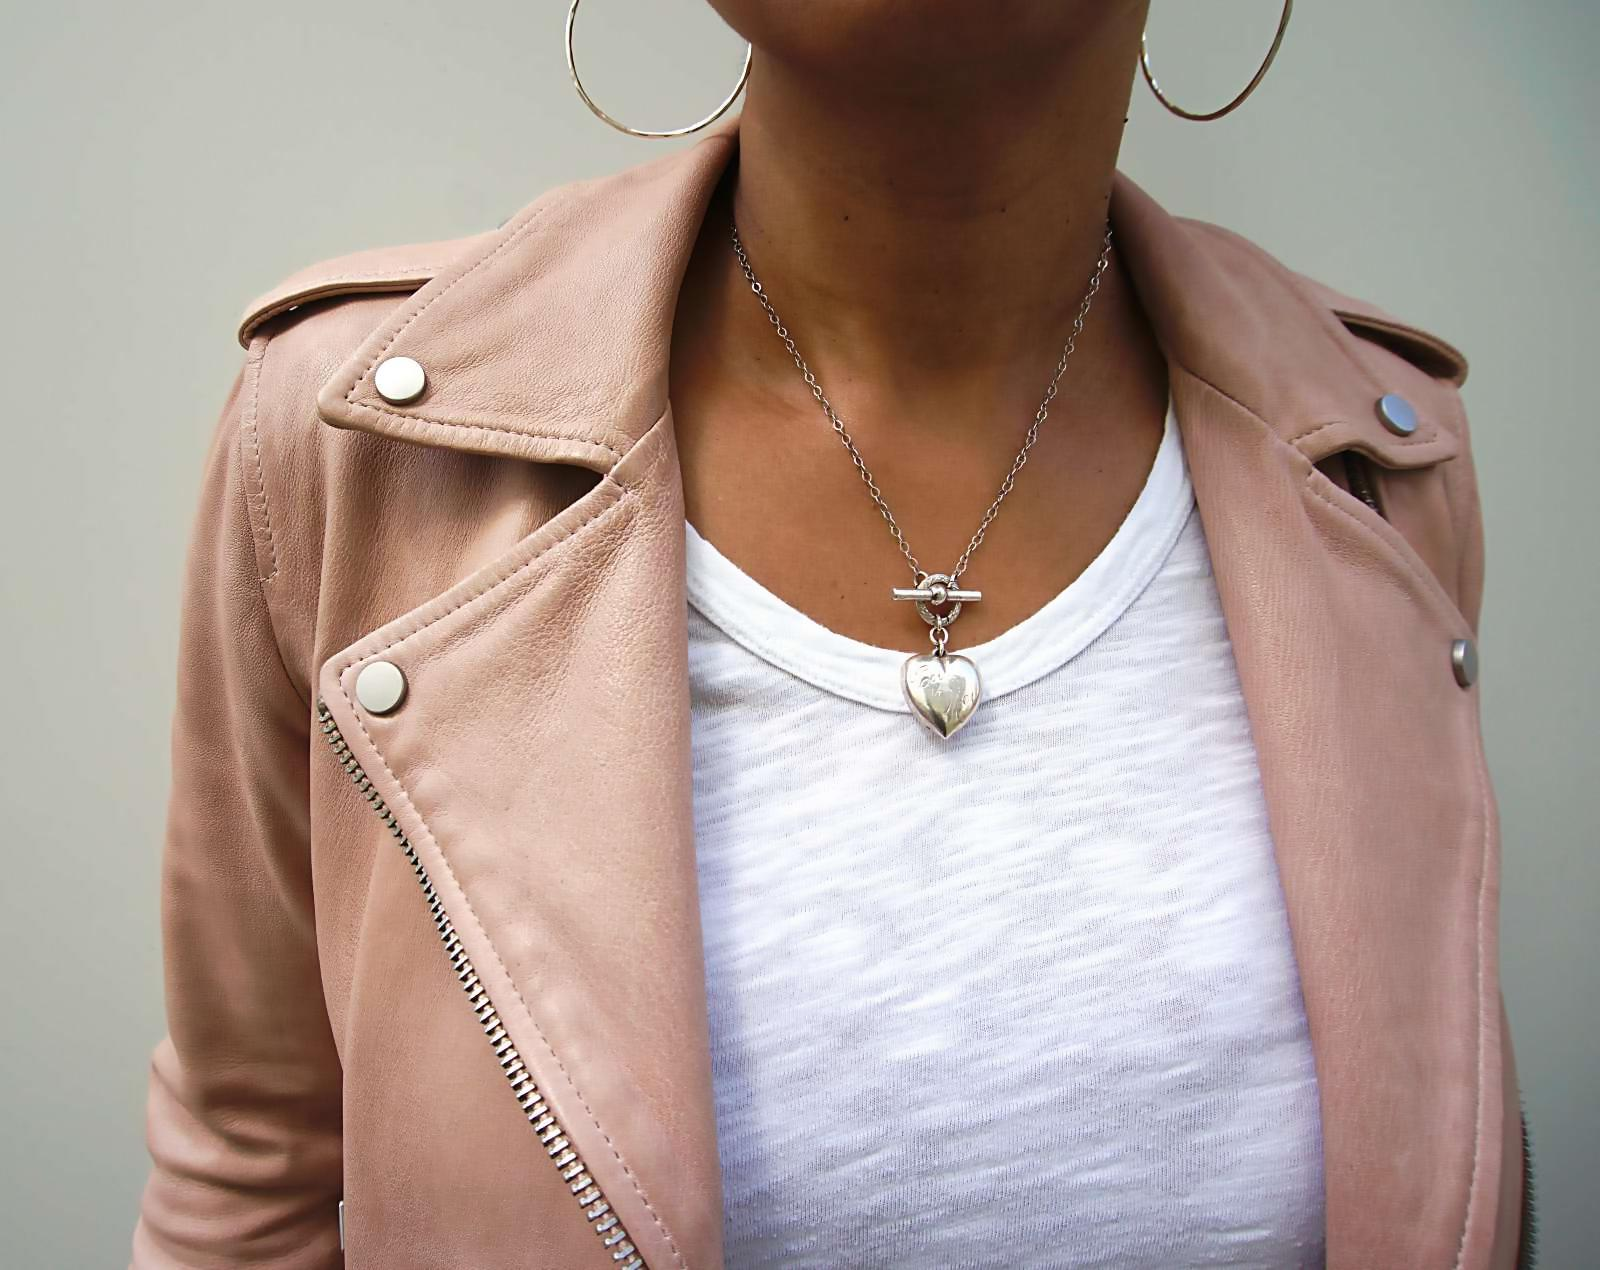 What to wear for effortless cool - it's easier than you think (in fact effortless). | My Syle | Wilt tee | Allsaints leather jacket - Sherrelle